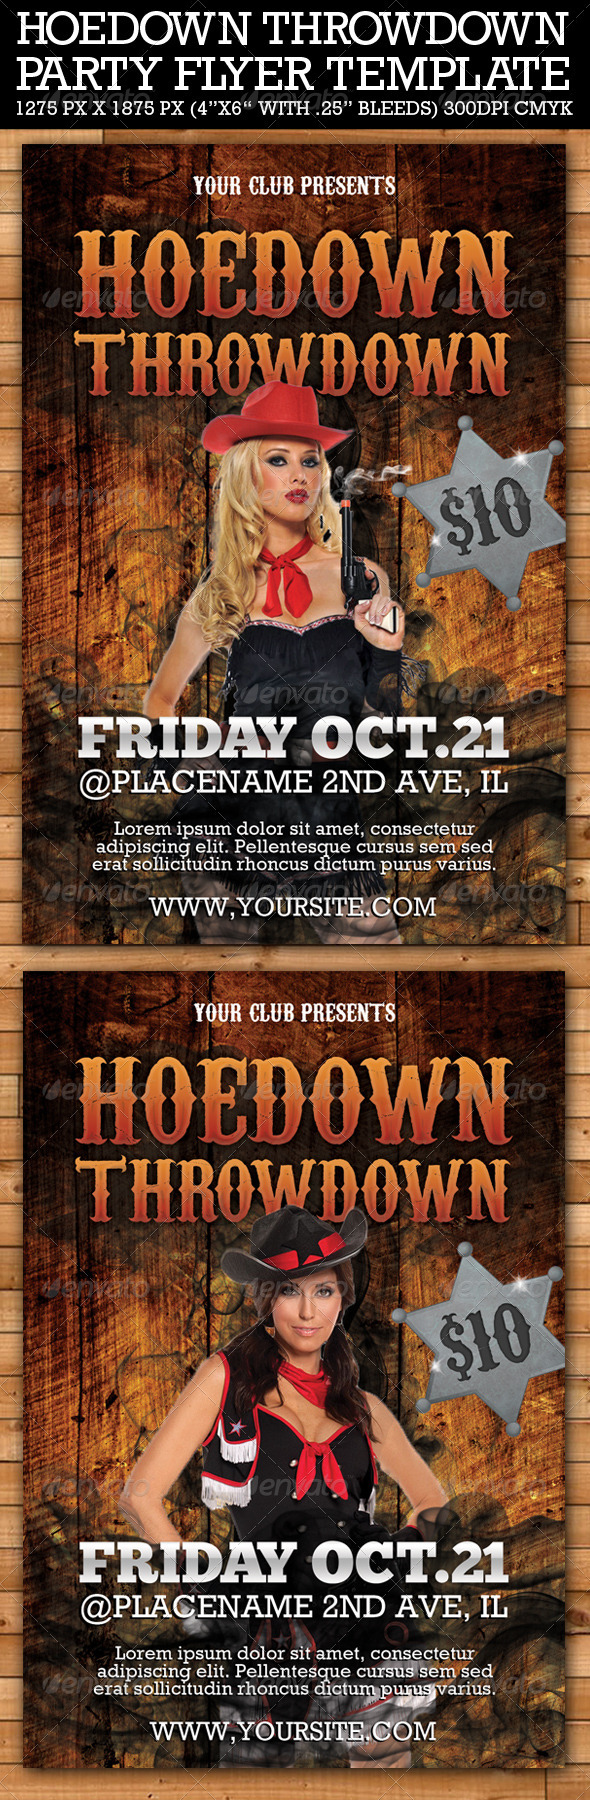 Hoedown Throwdown Party Flyer Template - Clubs & Parties Events